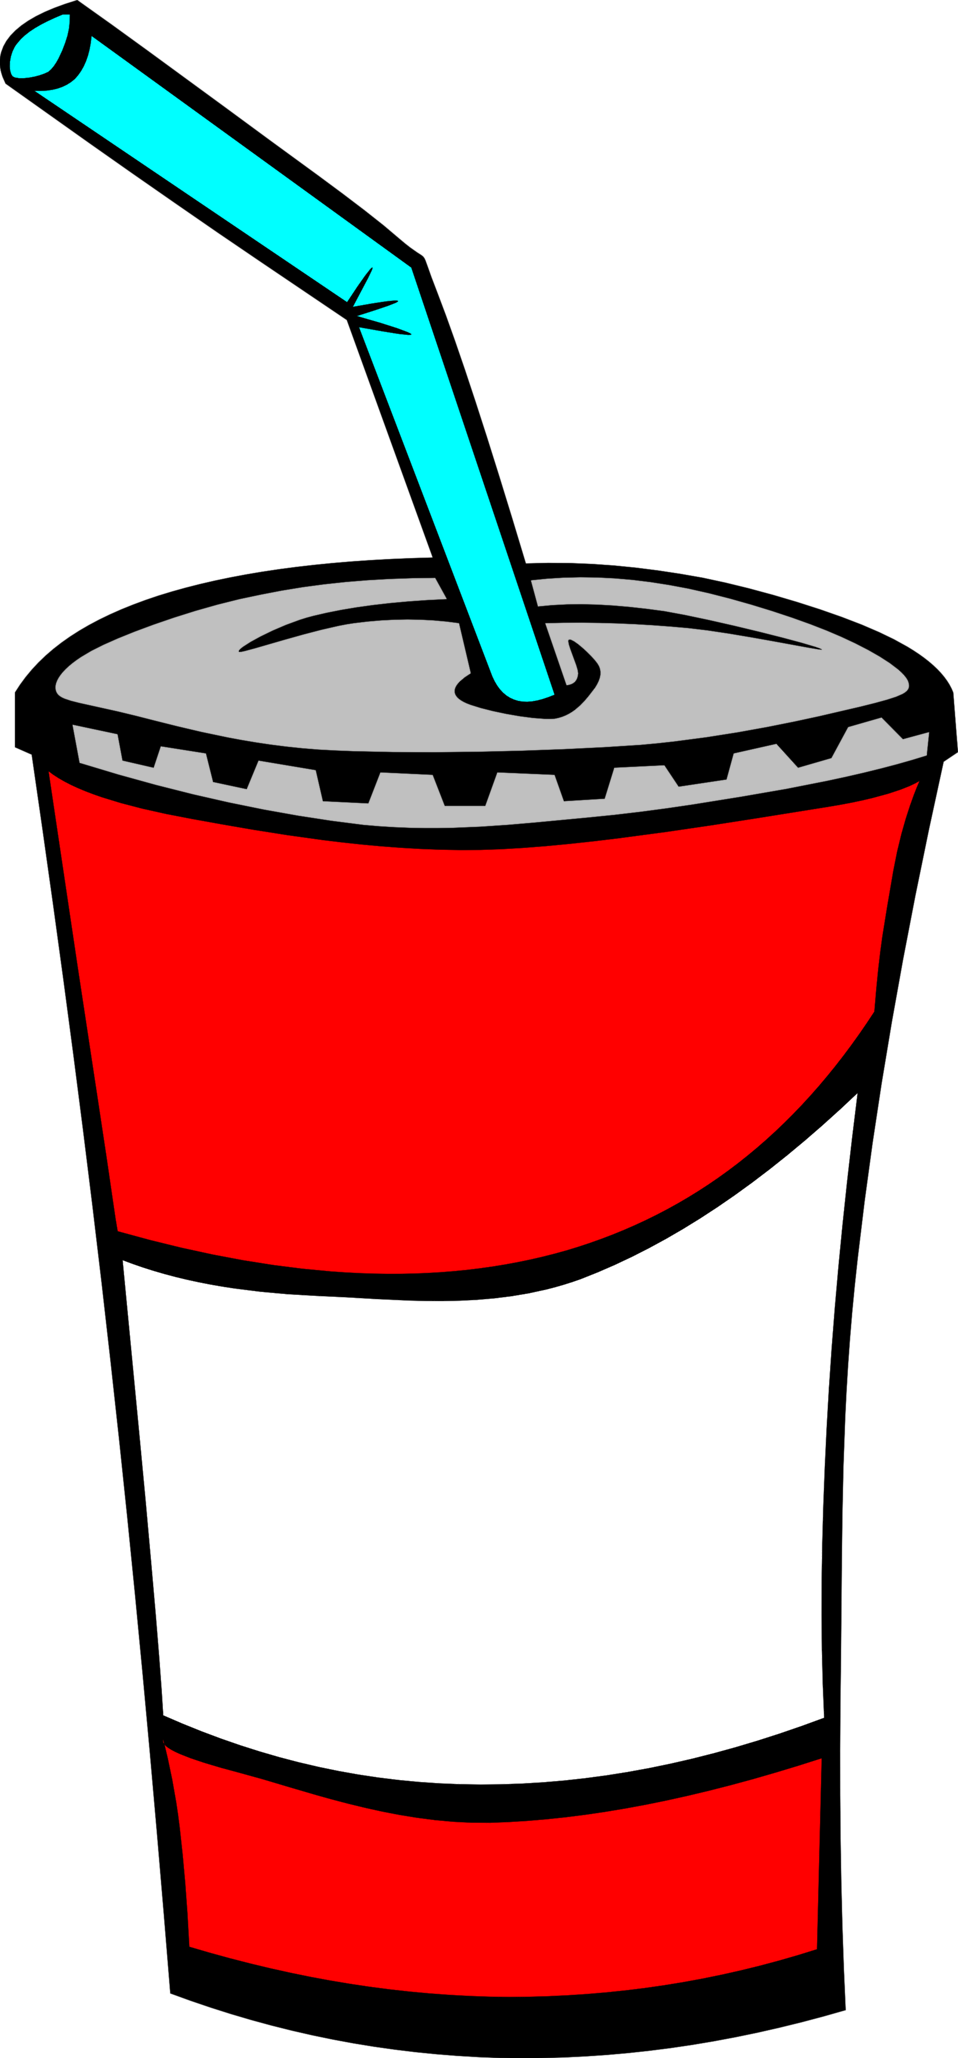 Drink clipart.  collection of food